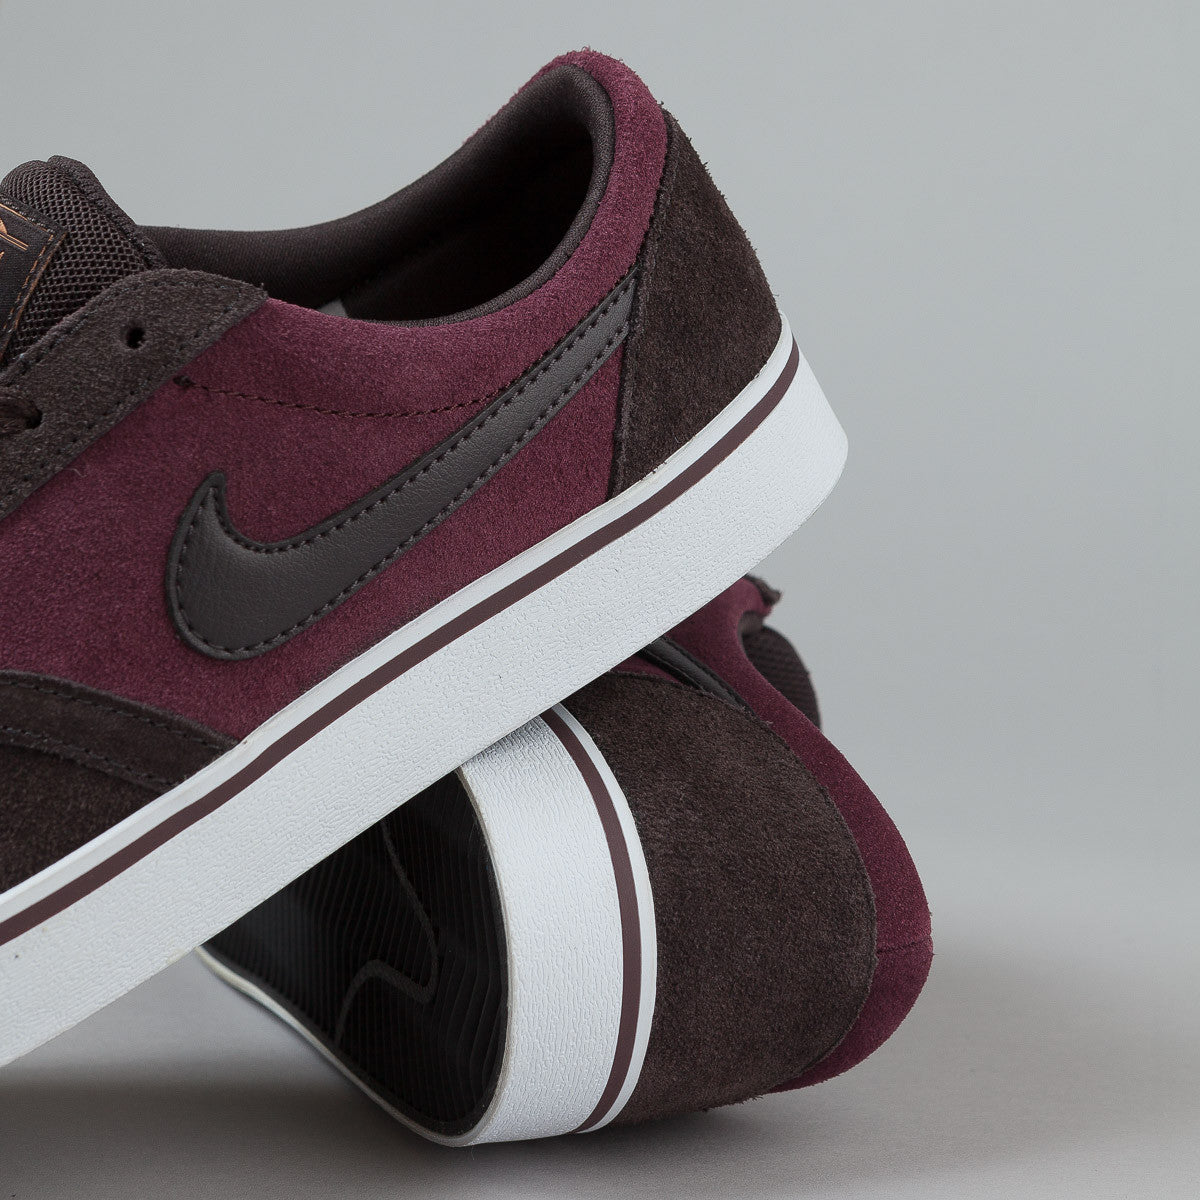 Nike SB Vulc Rod Shoes - Deep Burgundy / Tar - Metallic Copper